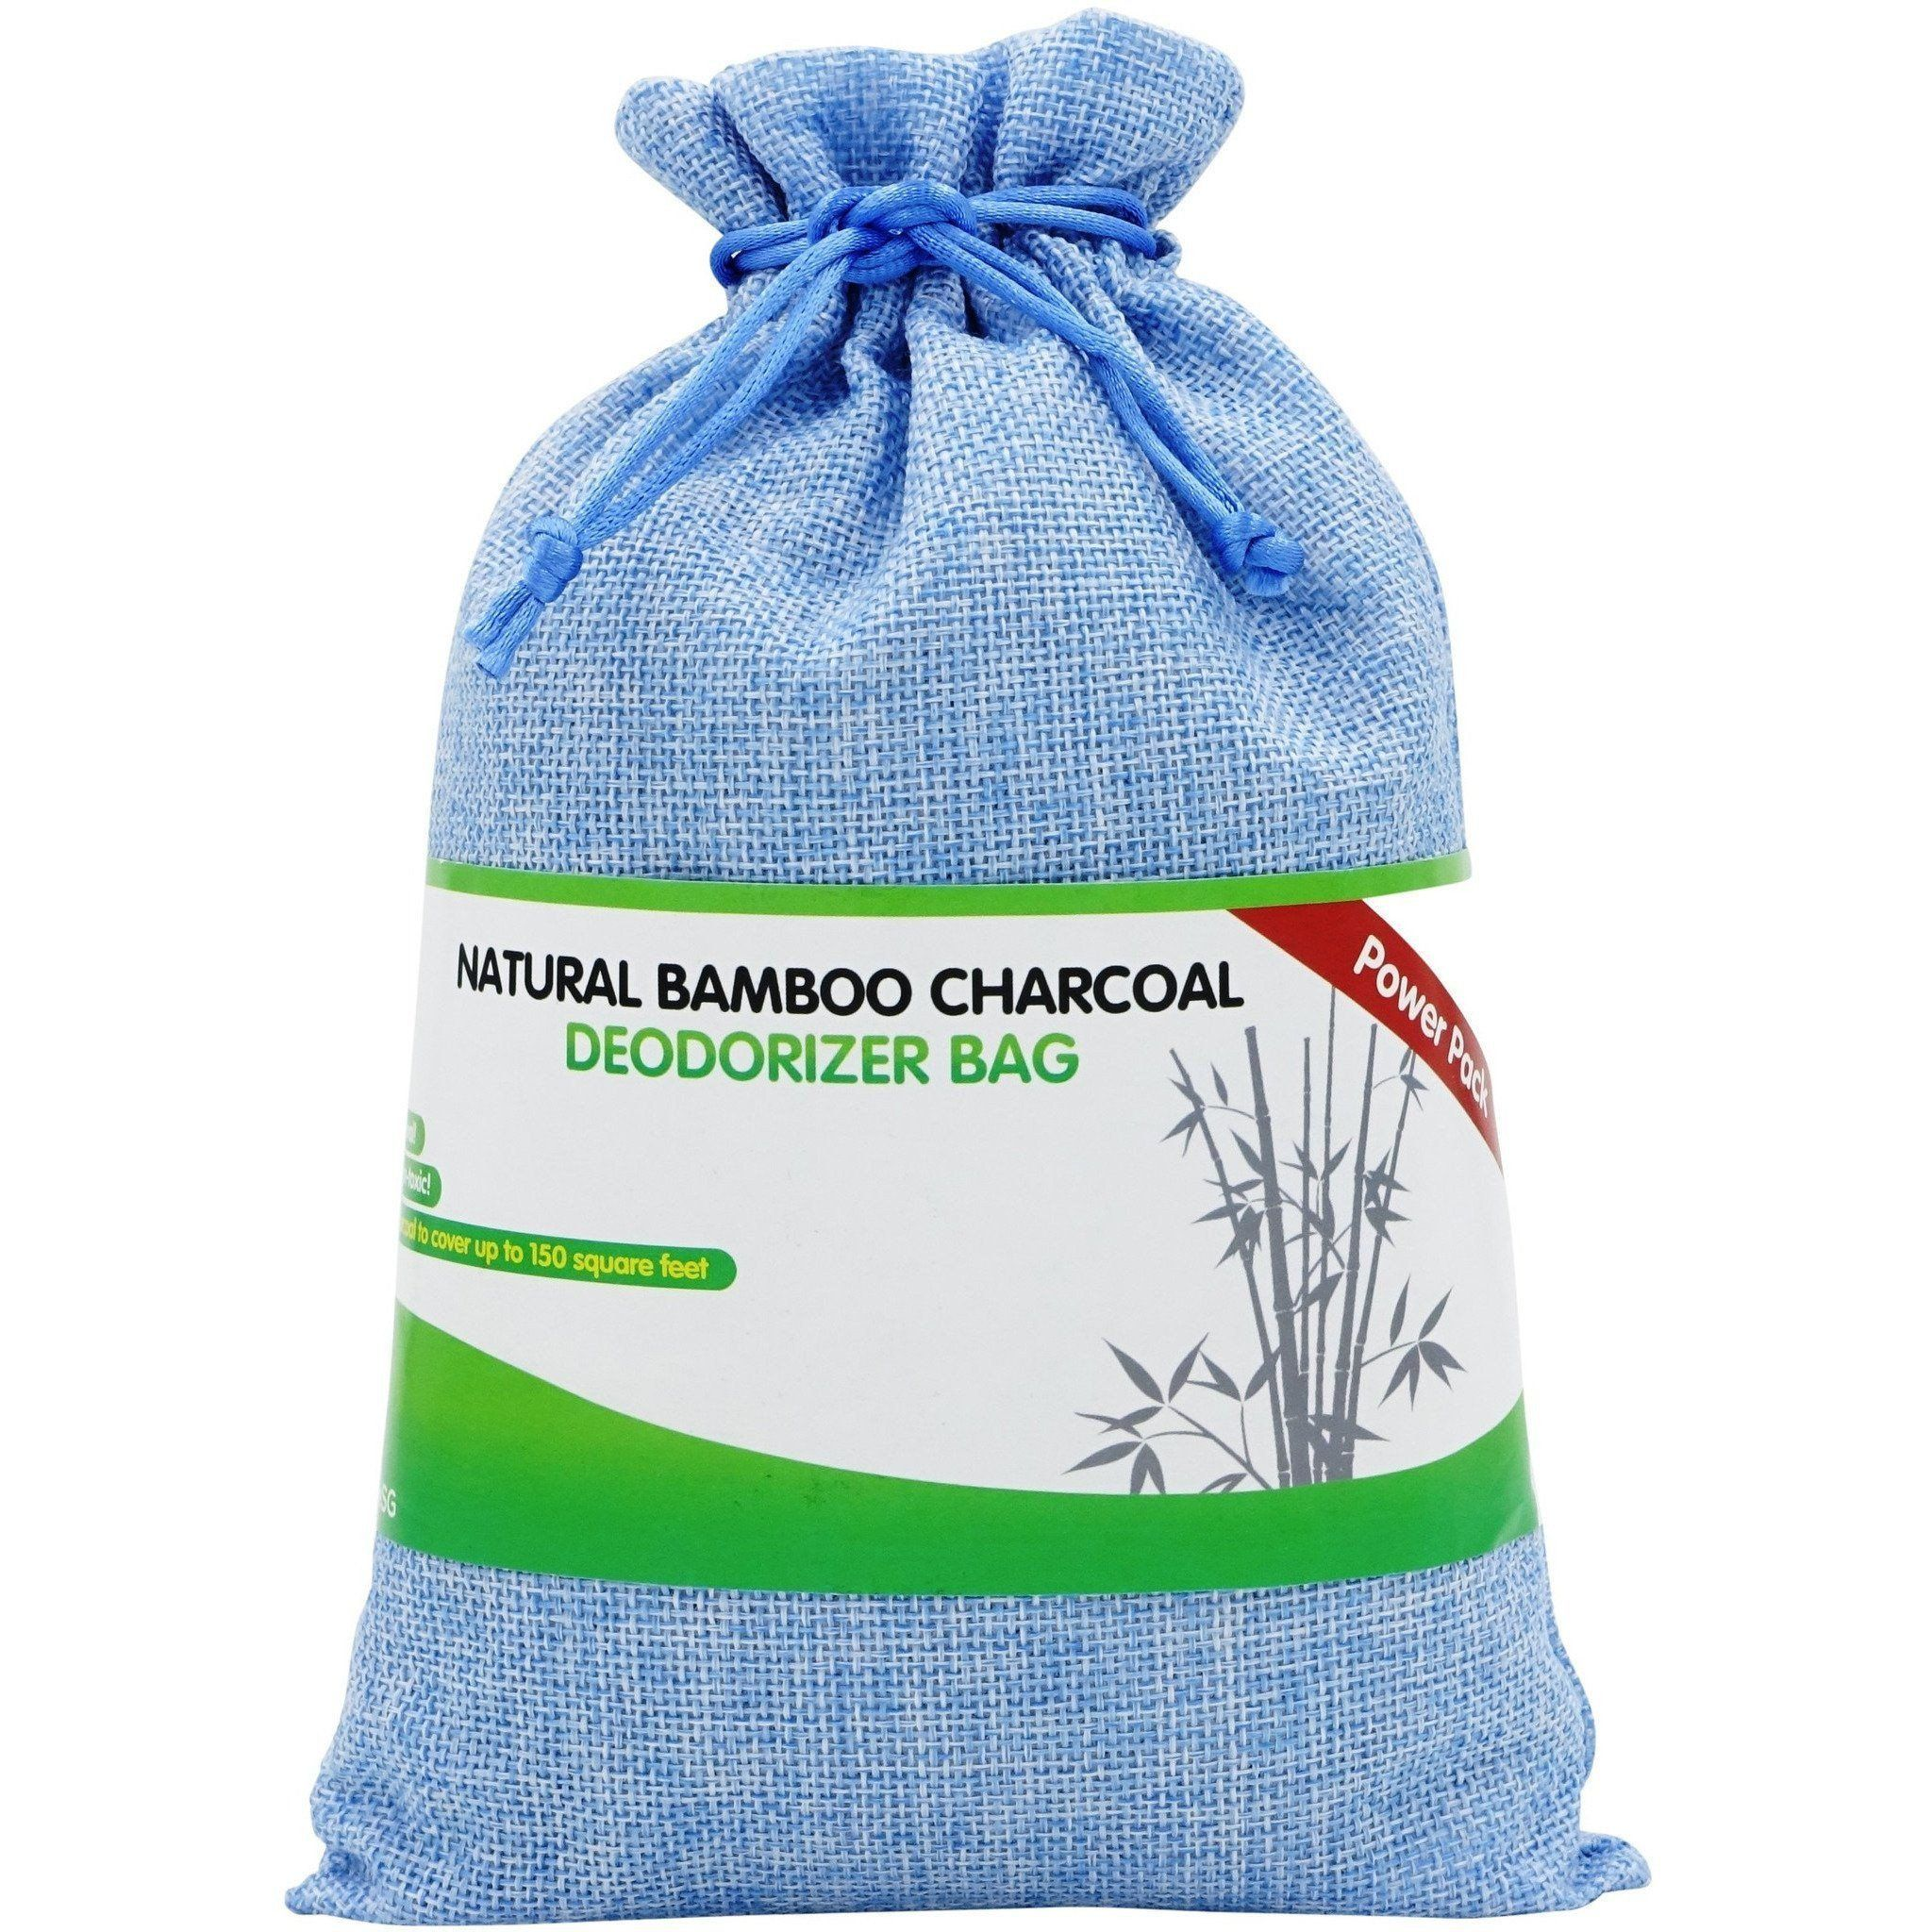 Great Value SG Bamboo Charcoal Deodorizer Power Pack Car